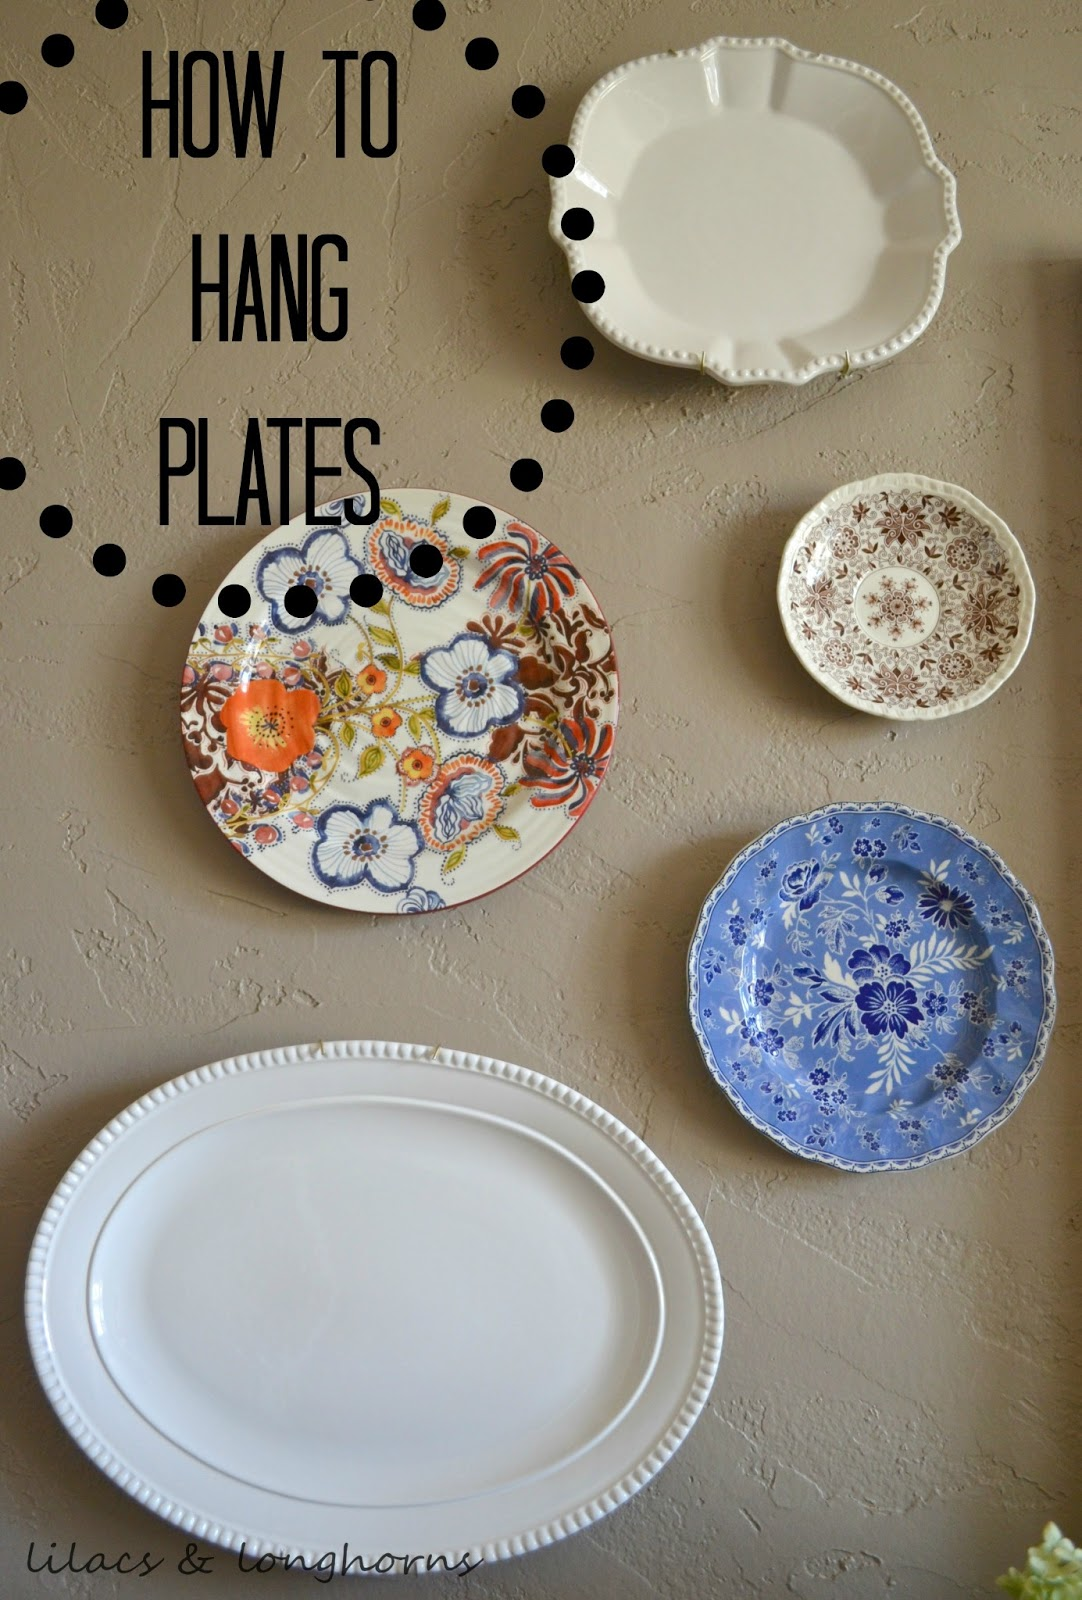 How to hang plates lilacs and longhornslilacs and longhorns - Pictures to hang on wall ...